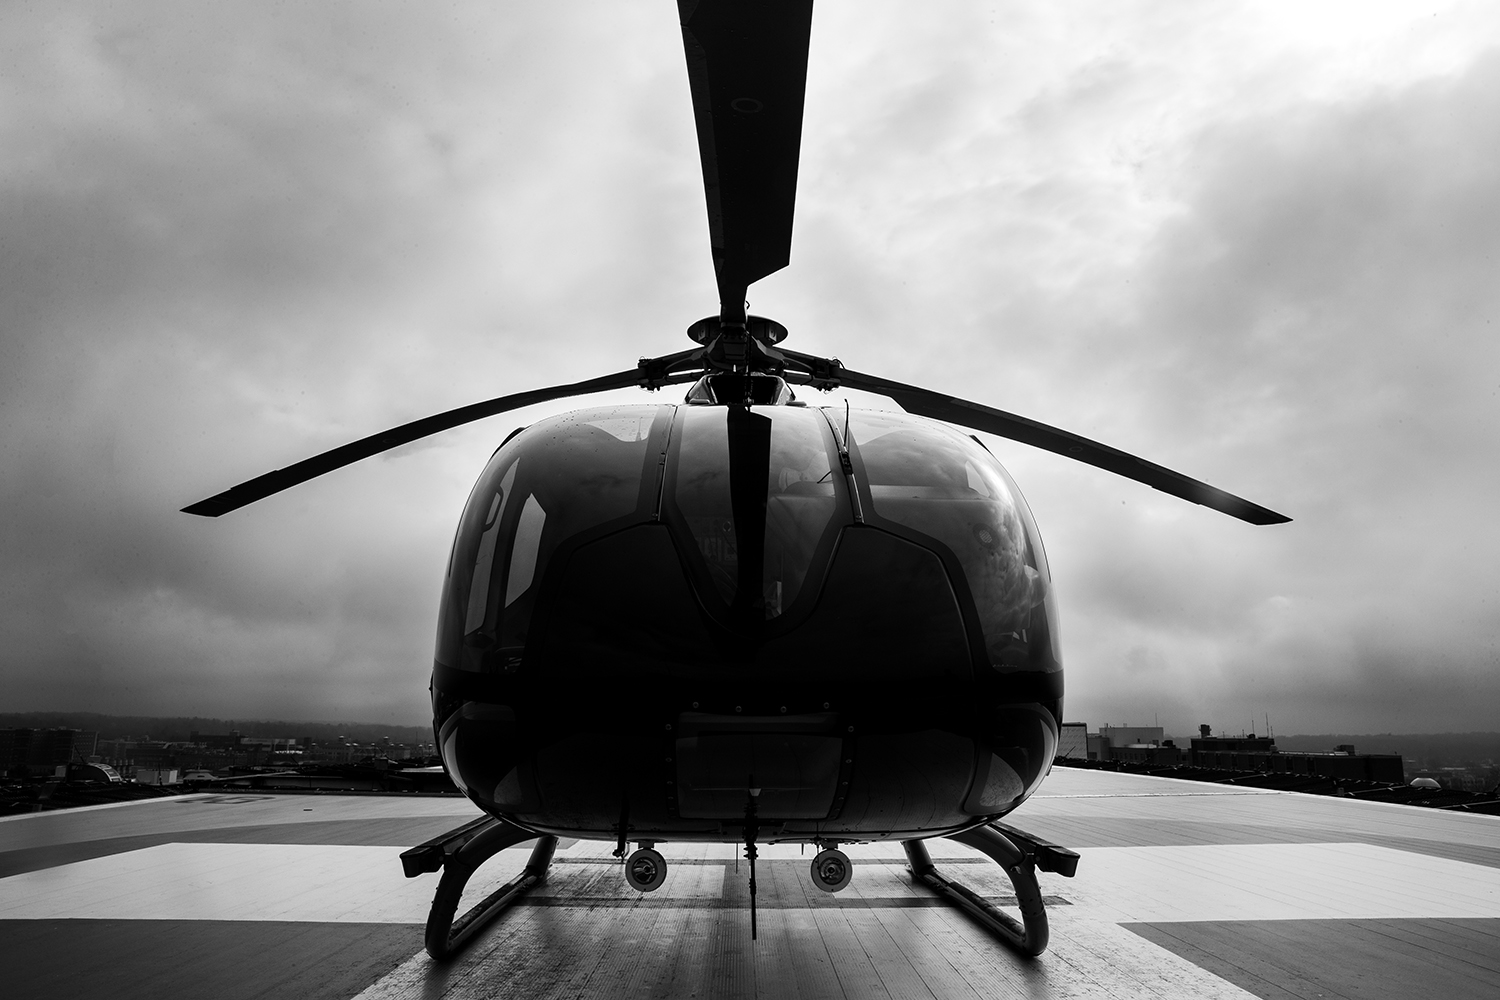 An+AirCare+helicopter+sits+on+the+roof+of+UIHC+on+March+20%2C+2019+in+Iowa+City%2C+Iowa.+